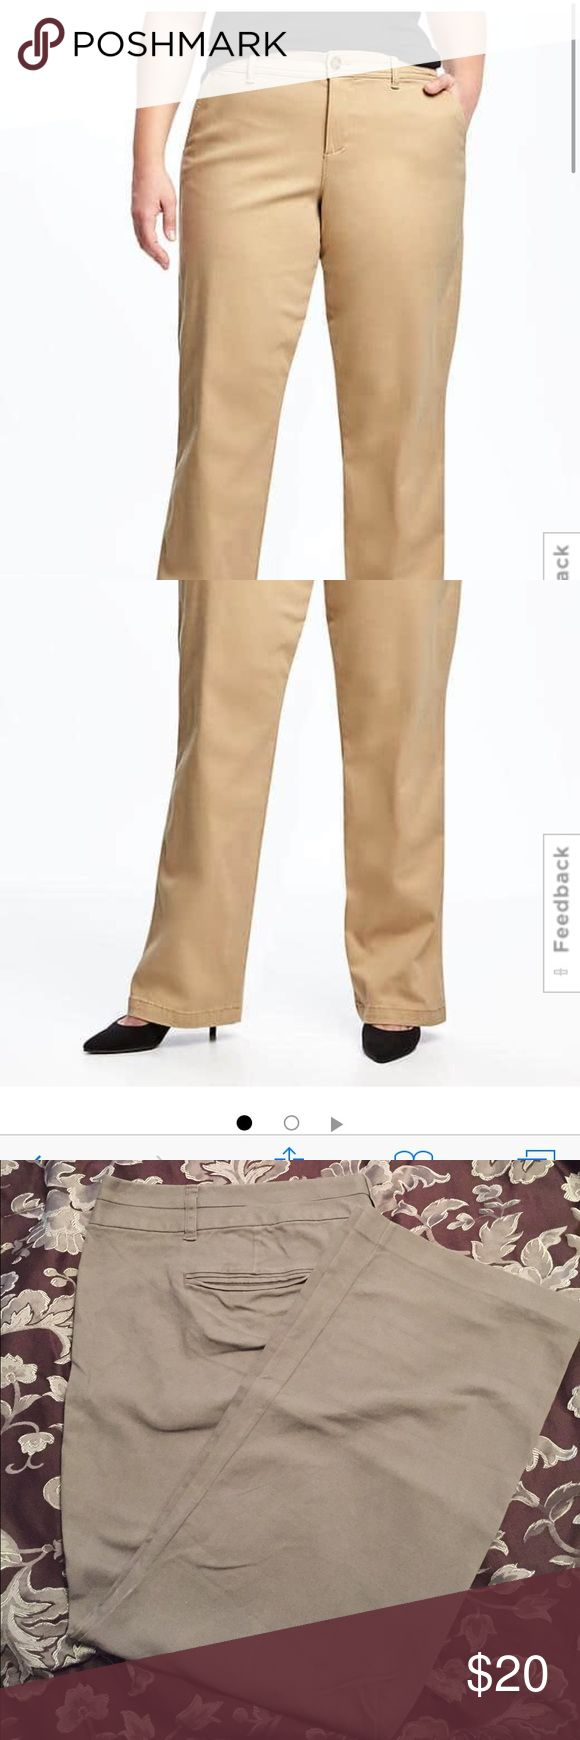 Old Navy Dress Khaki PLUS SIZE Cute and comfy Old Navy boot cut khakis. Small hole on side of leg. Can be easily sewn back together. Very similar to first two stock photos. Old Navy Pants Boot Cut & Flare